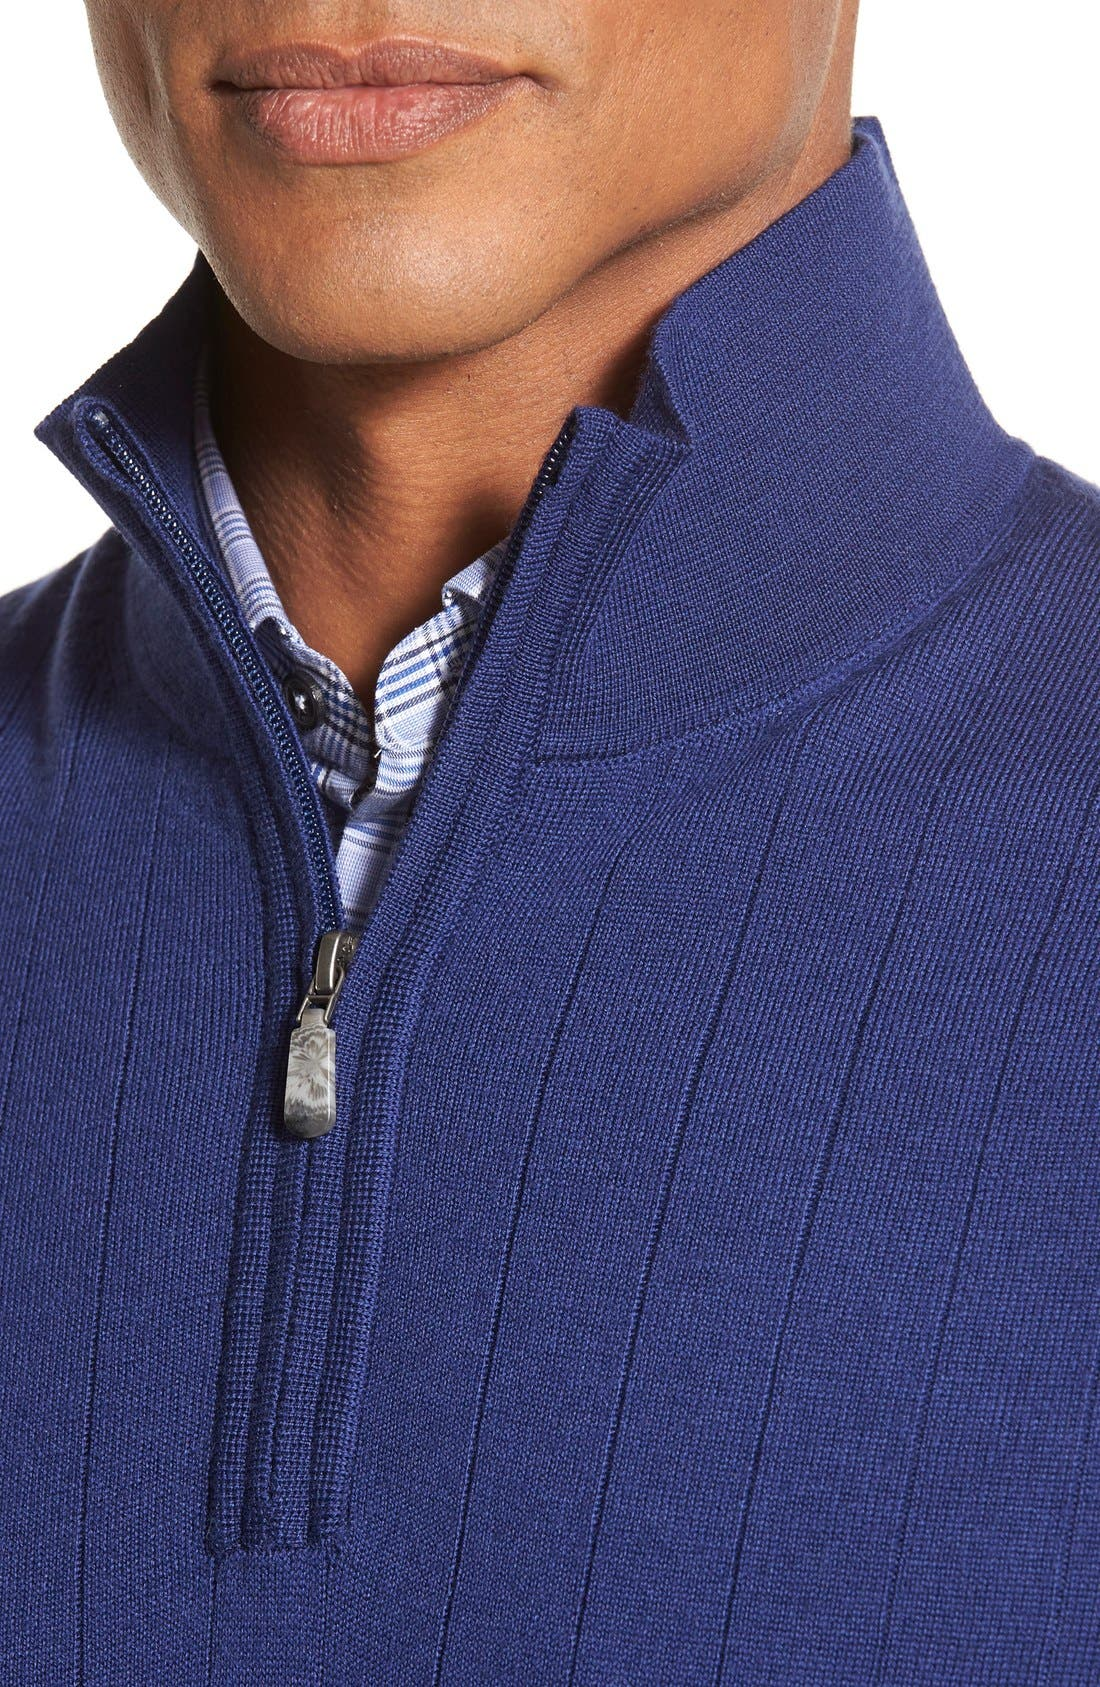 Quarter Zip Wool Sweater Vest,                             Alternate thumbnail 4, color,                             Summer Navy